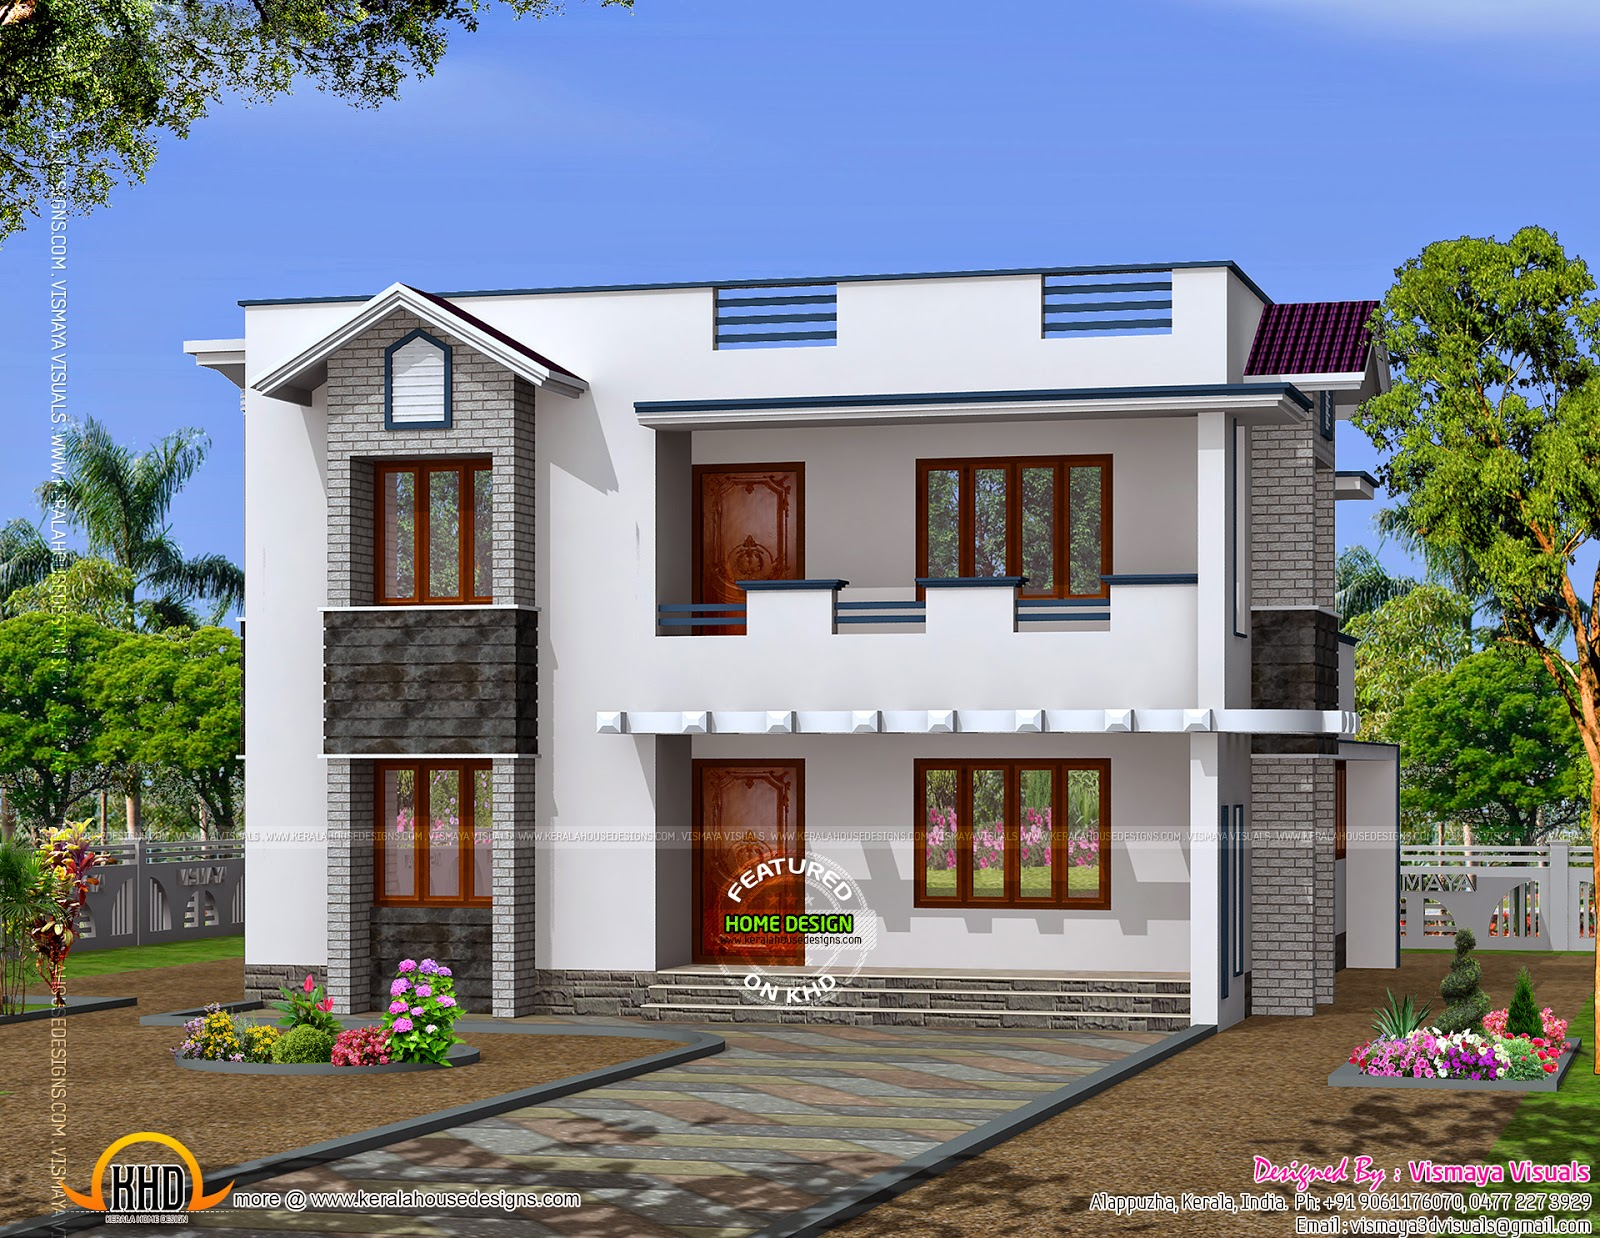 Simple design home kerala home design and floor plans for Simple house blueprint